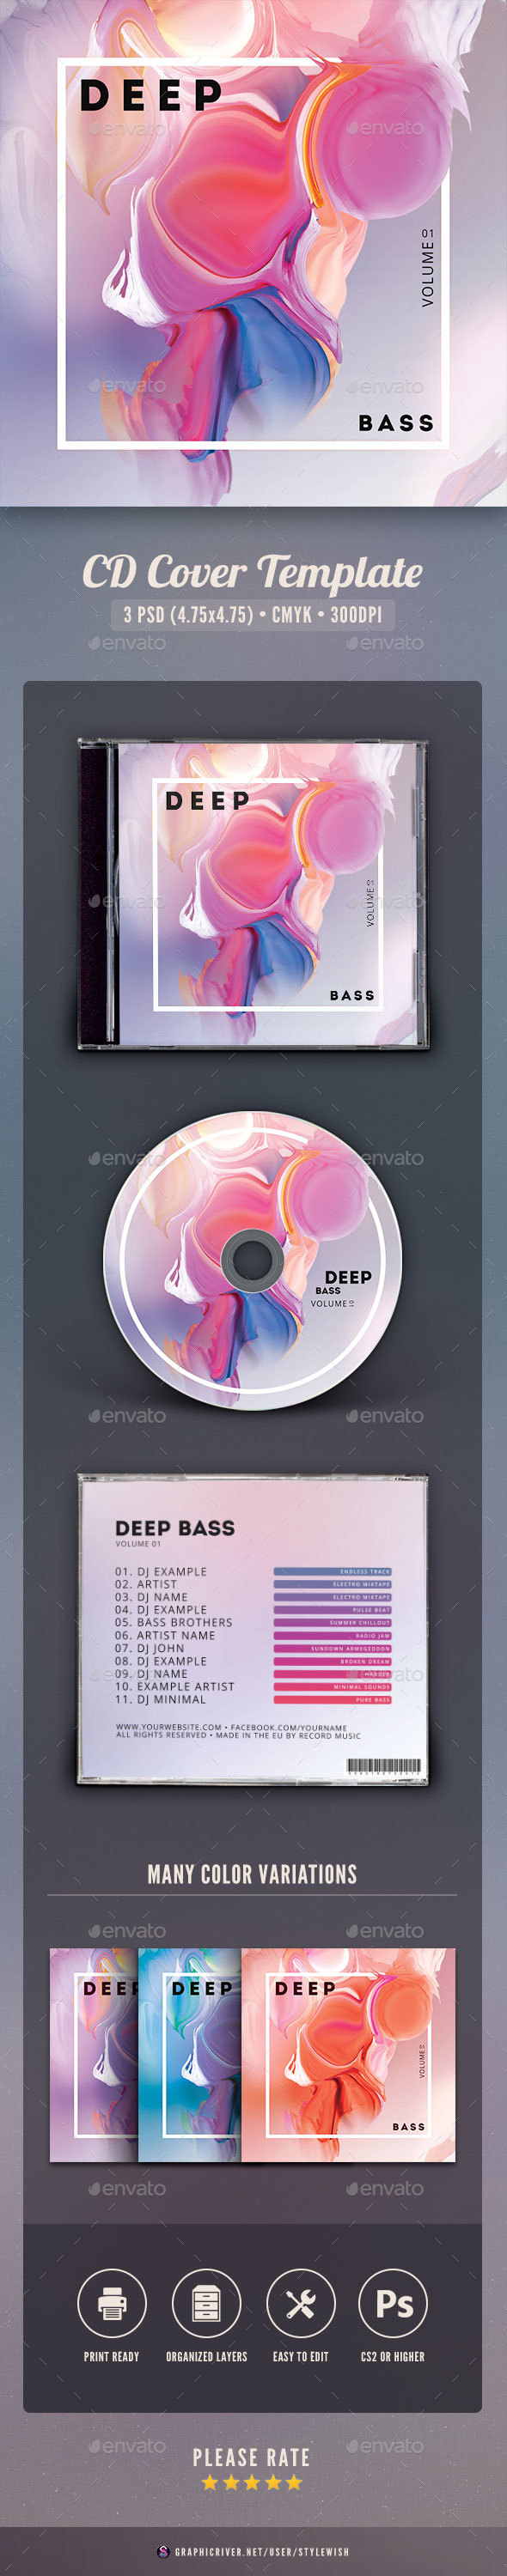 GraphicRiver Deep Bass CD Cover Artwork 20986022